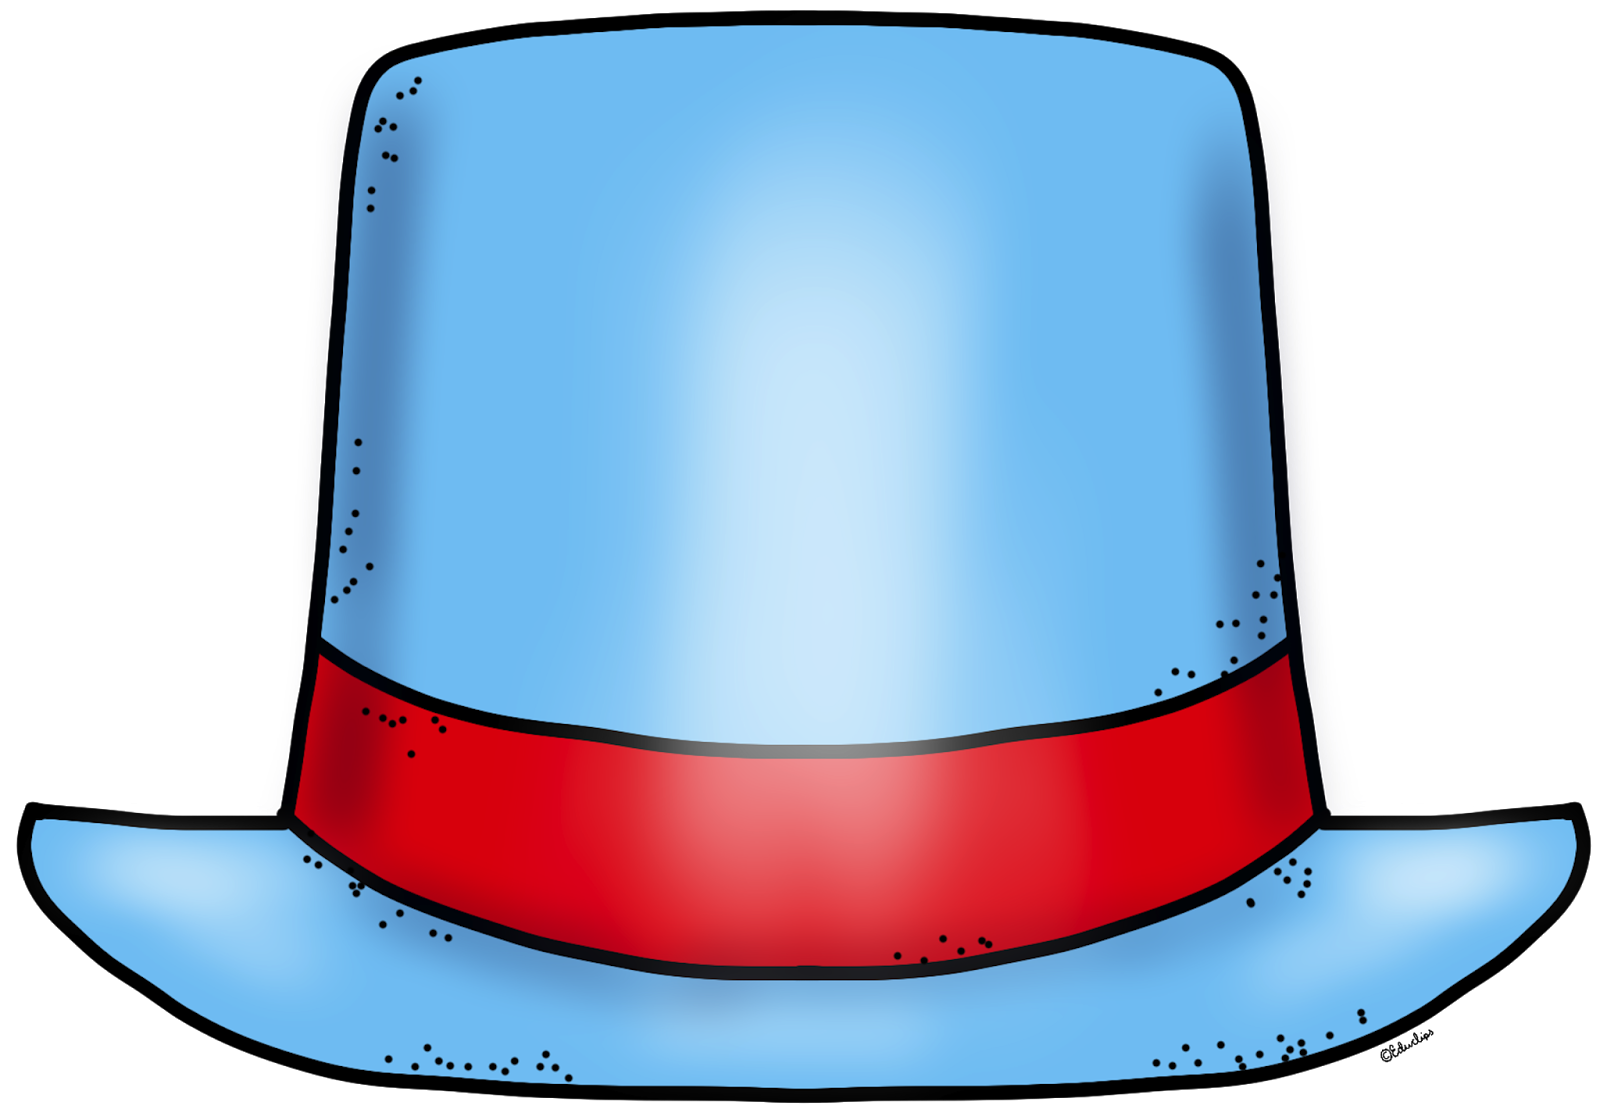 Top Hat Clipart - Cliparts.co